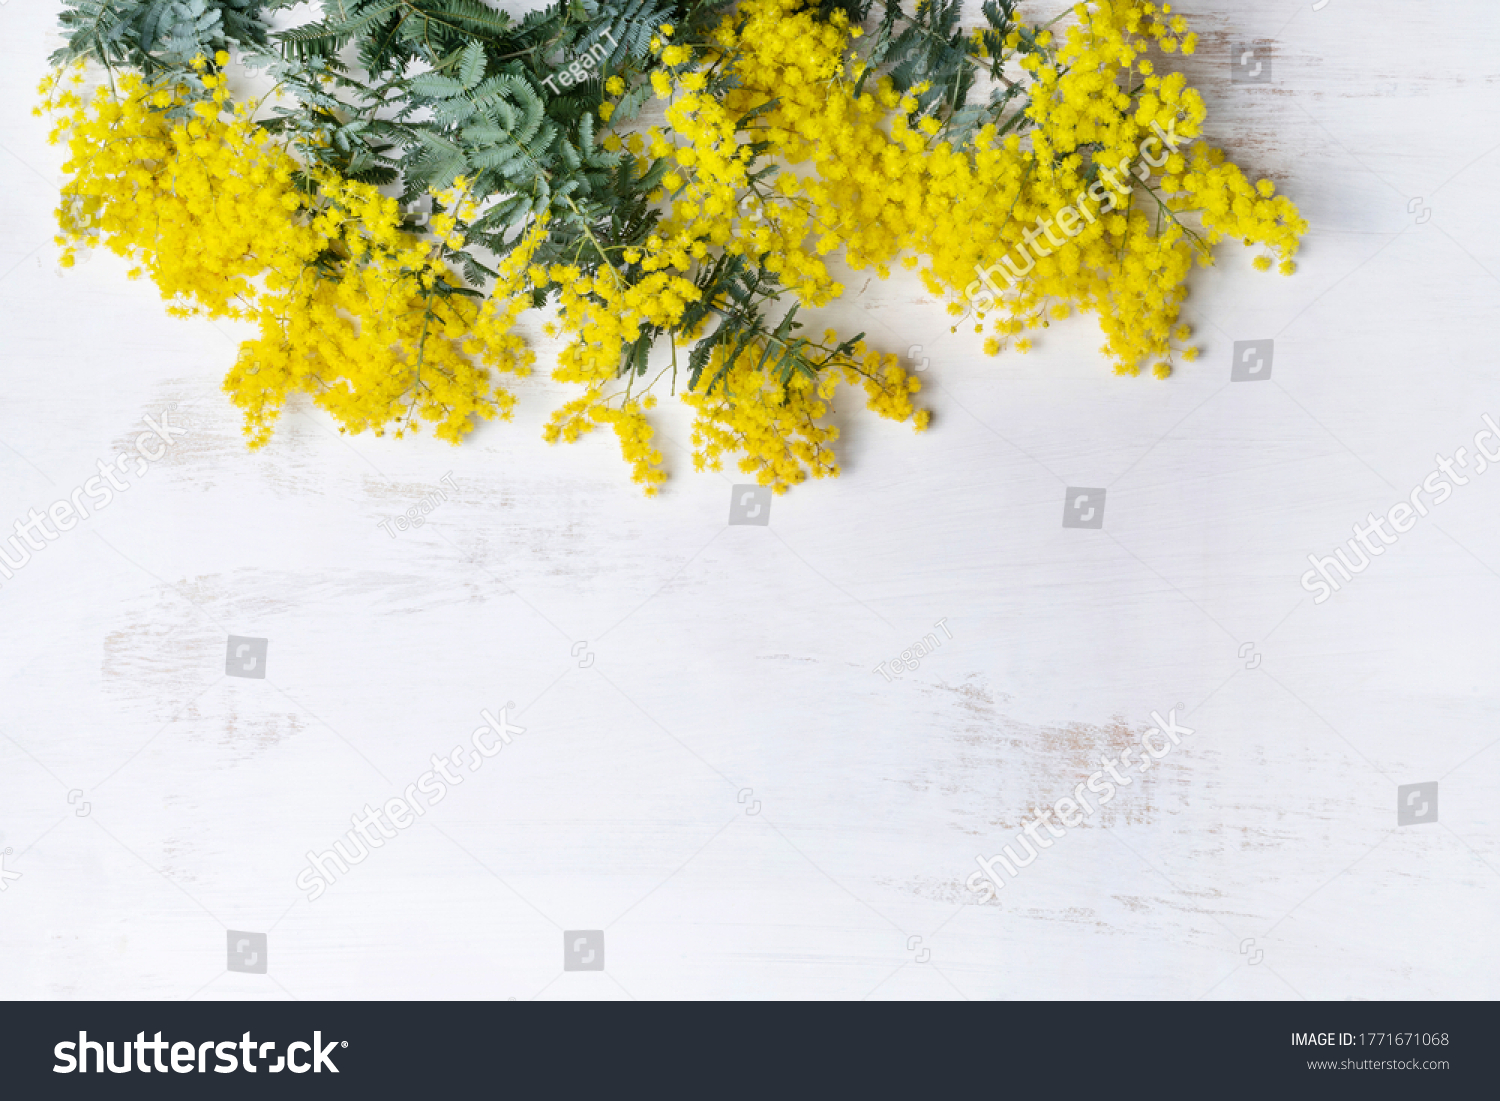 Beautiful Australian native yellow wattle or acacia flowers, frame the composition space from above, on a white rustic background. Know as Acacia baileyana or Cootamundra wattle. Space for copy. #1771671068